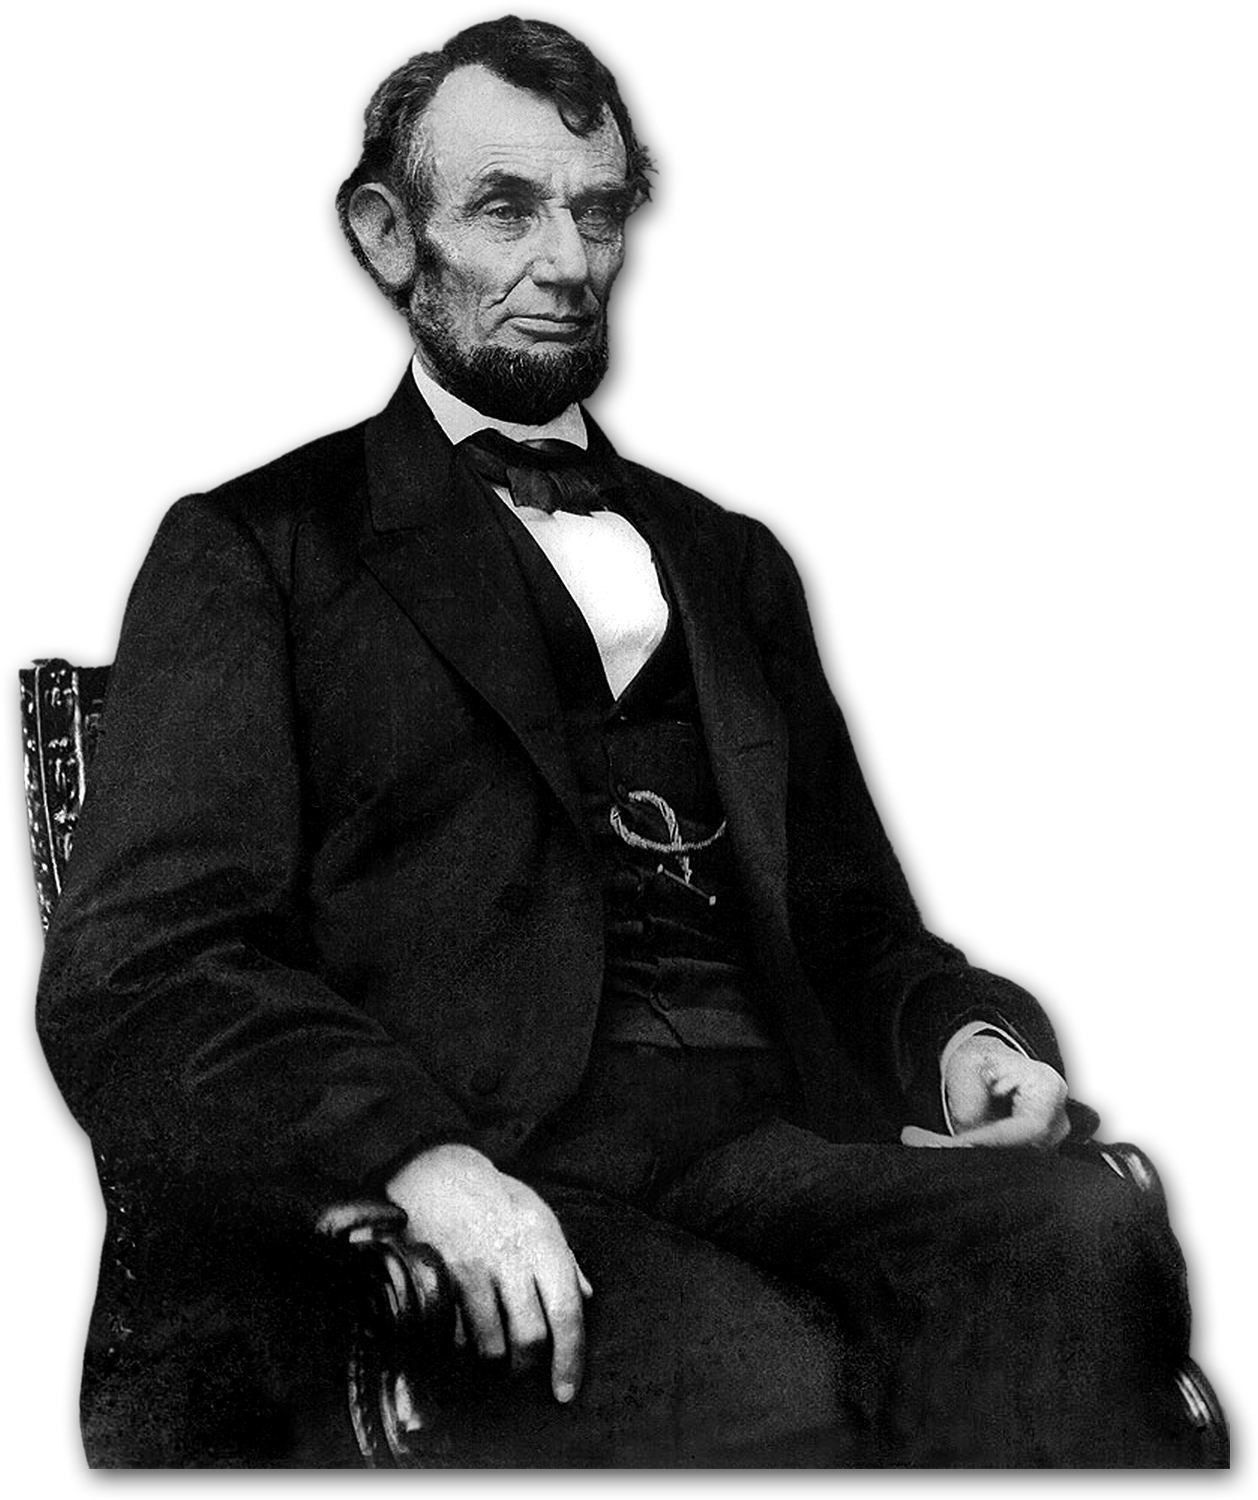 Abraham Lincoln PNG Images Transparent Free Download.